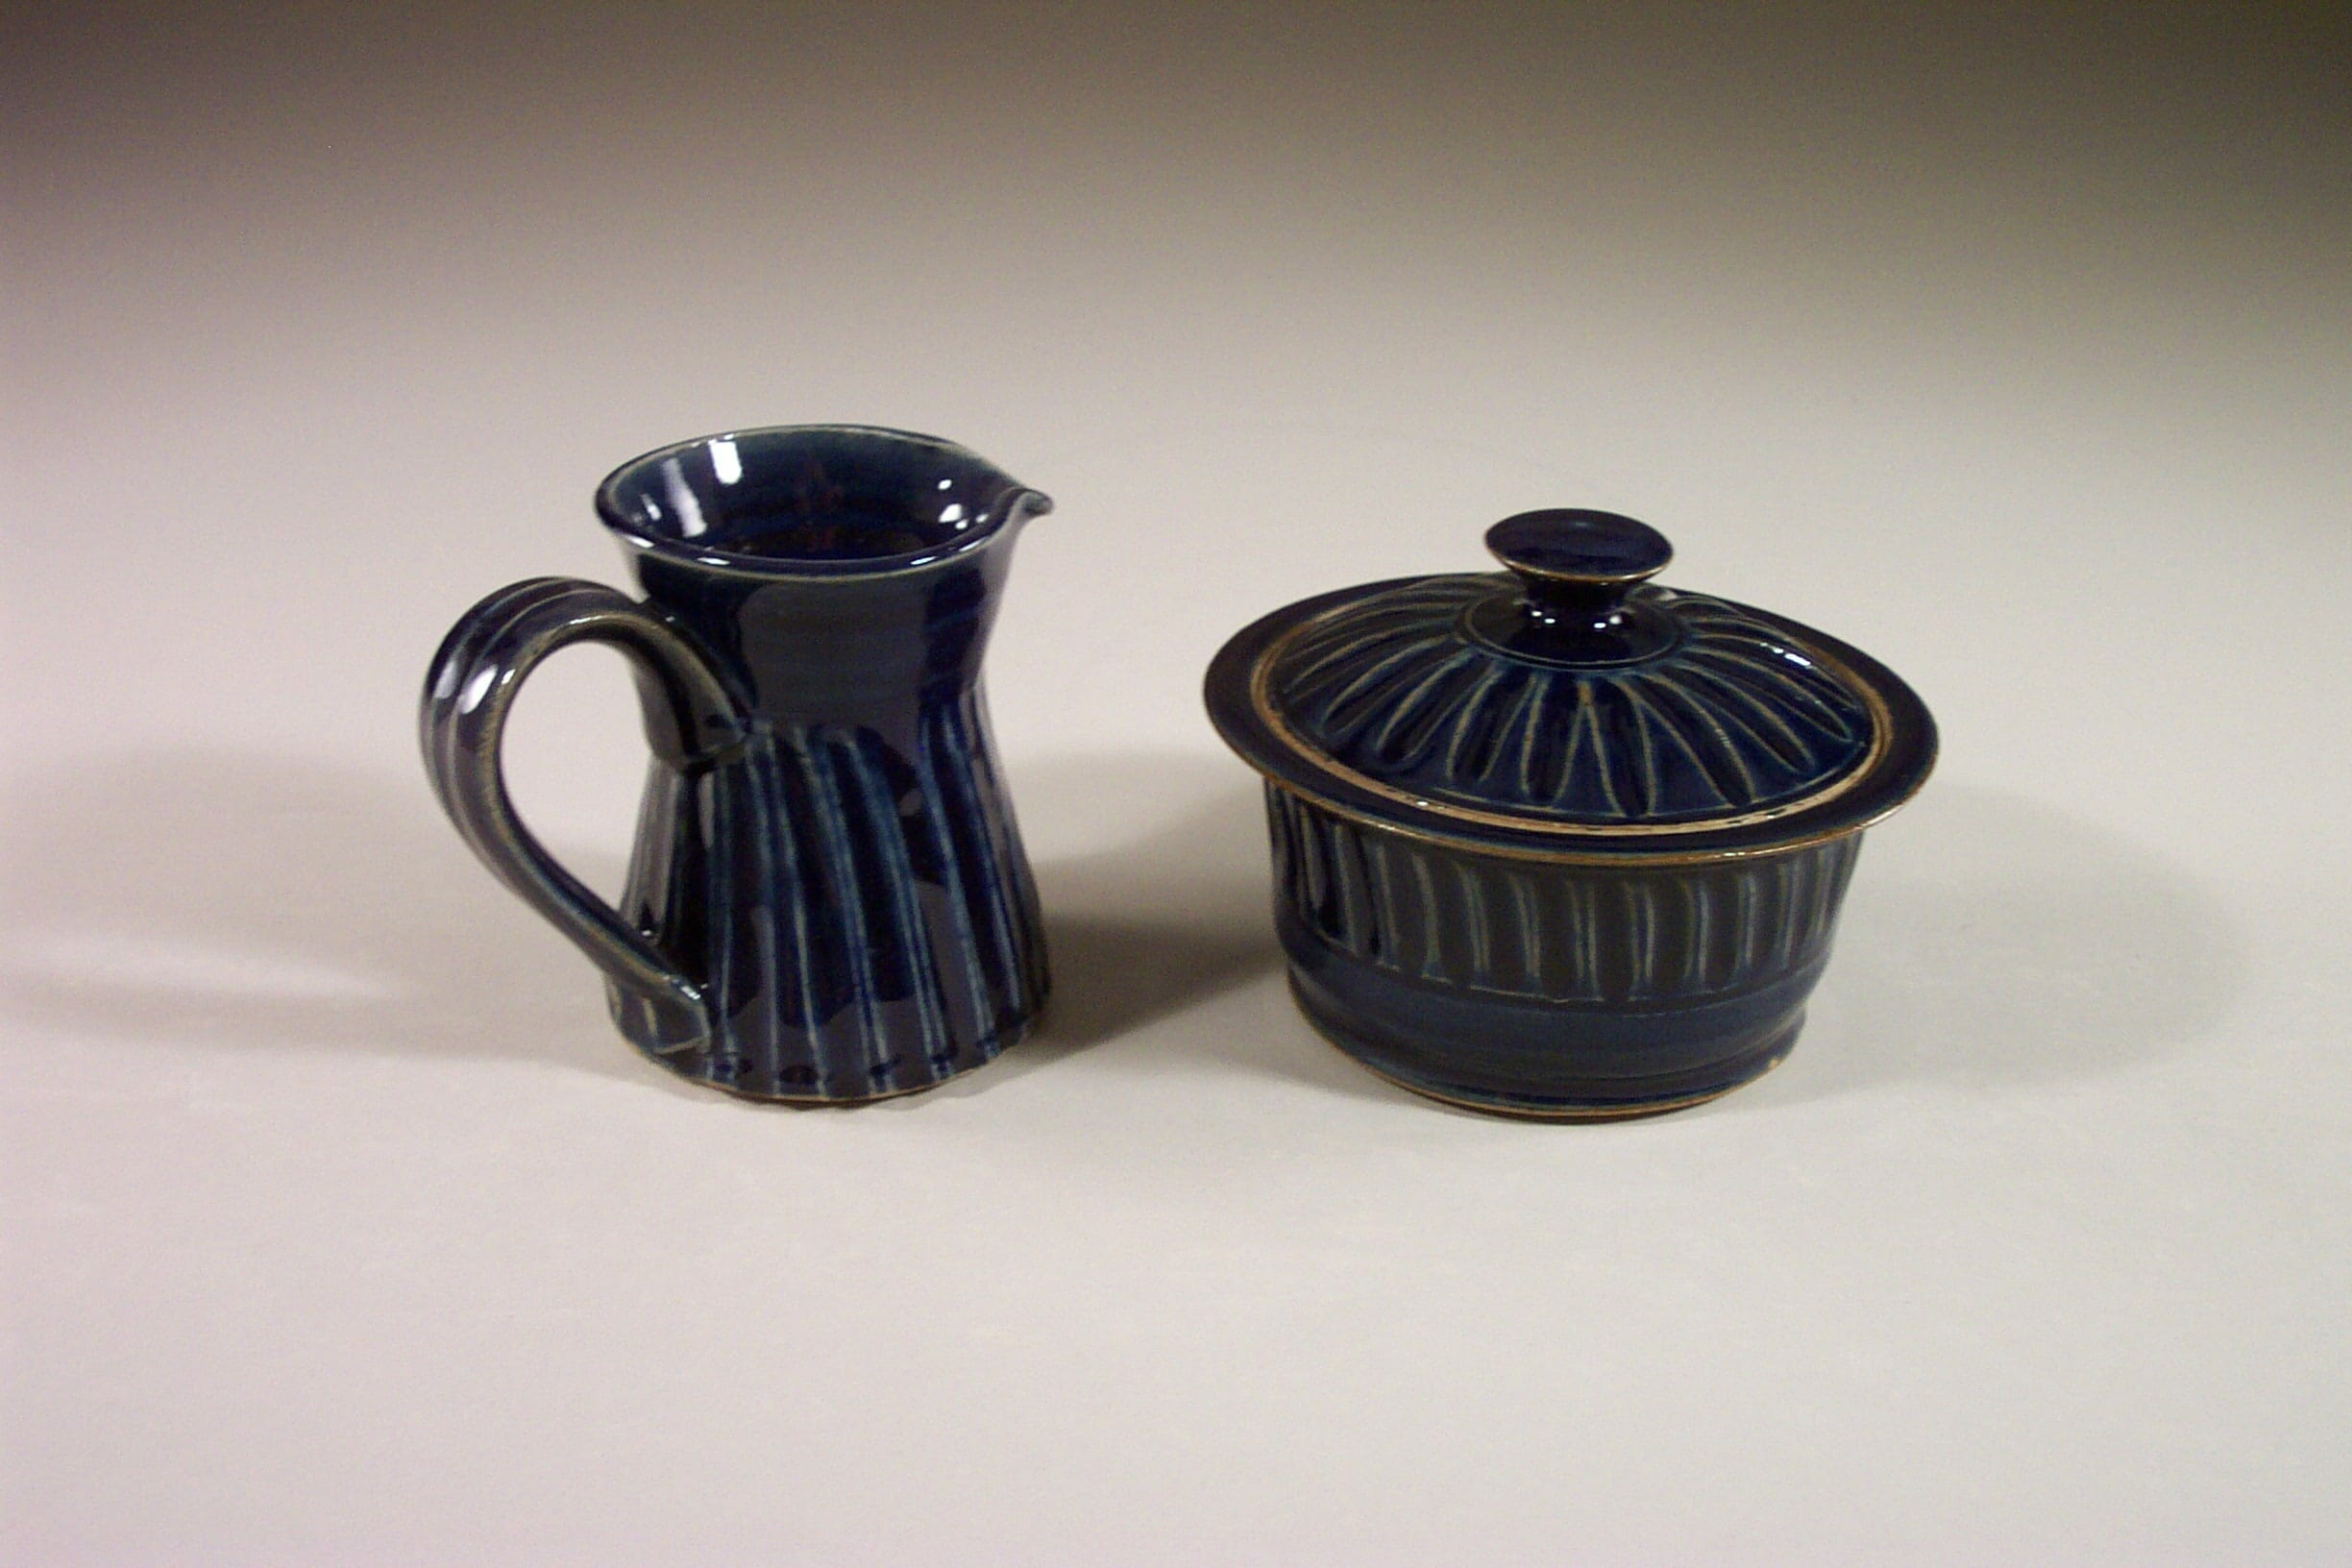 Creamer and Sugar Bowl with Lid Design 2 in Dark Blue Glaze